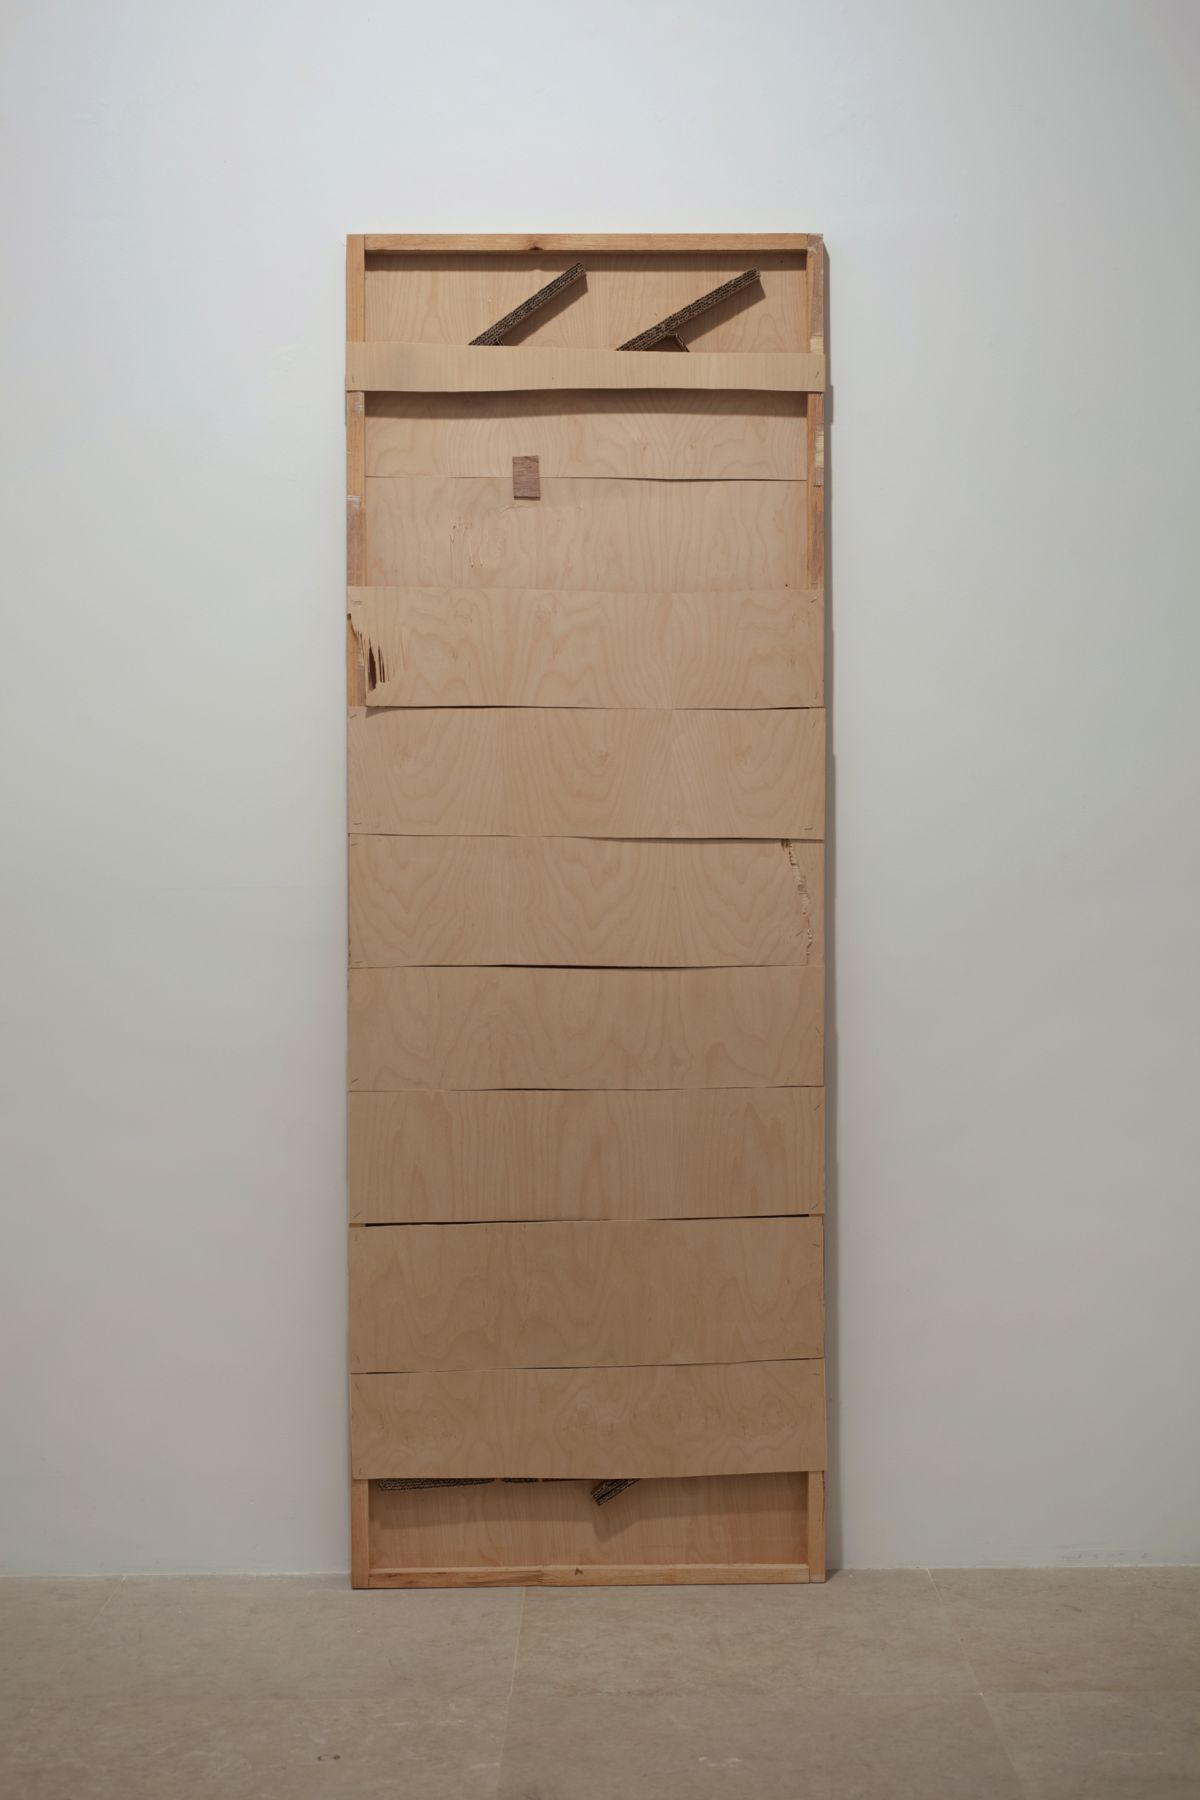 Gedi Sibony, Untitled, 2010, hollow-core door, 80 x 28 x 2 inches